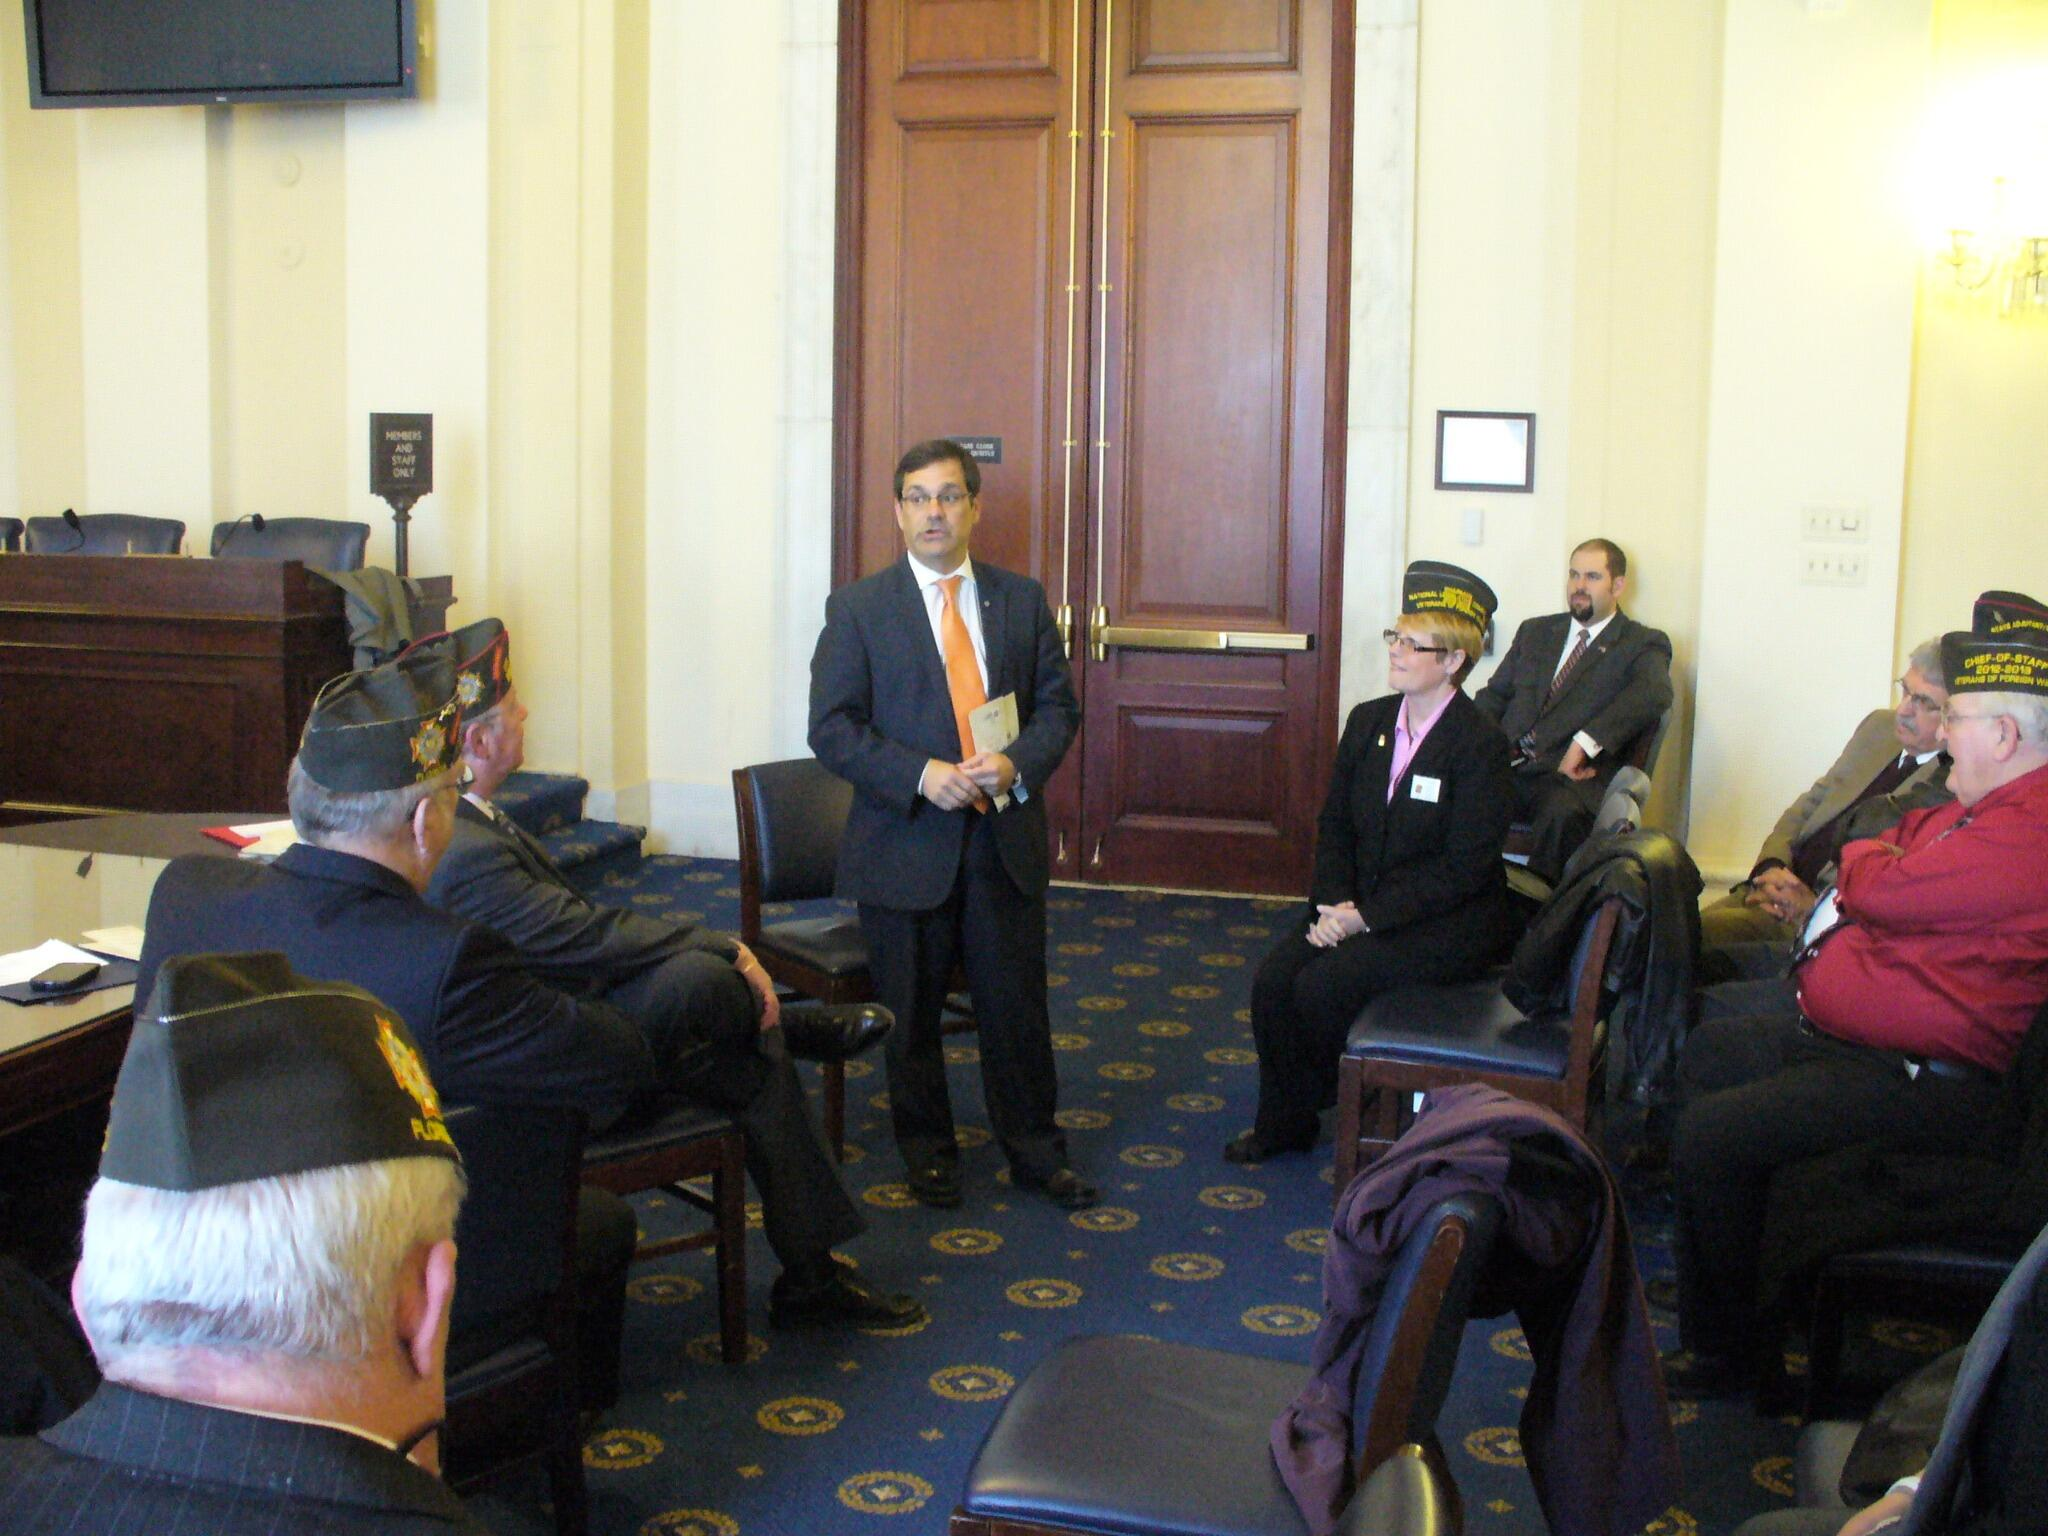 RT @VFWHQ: Florida VFW spoke to @RepGusBilirakis this week about GI Bill, health care, and other vets issues #VFWHill2014 http://t.co/Elya1FkRot